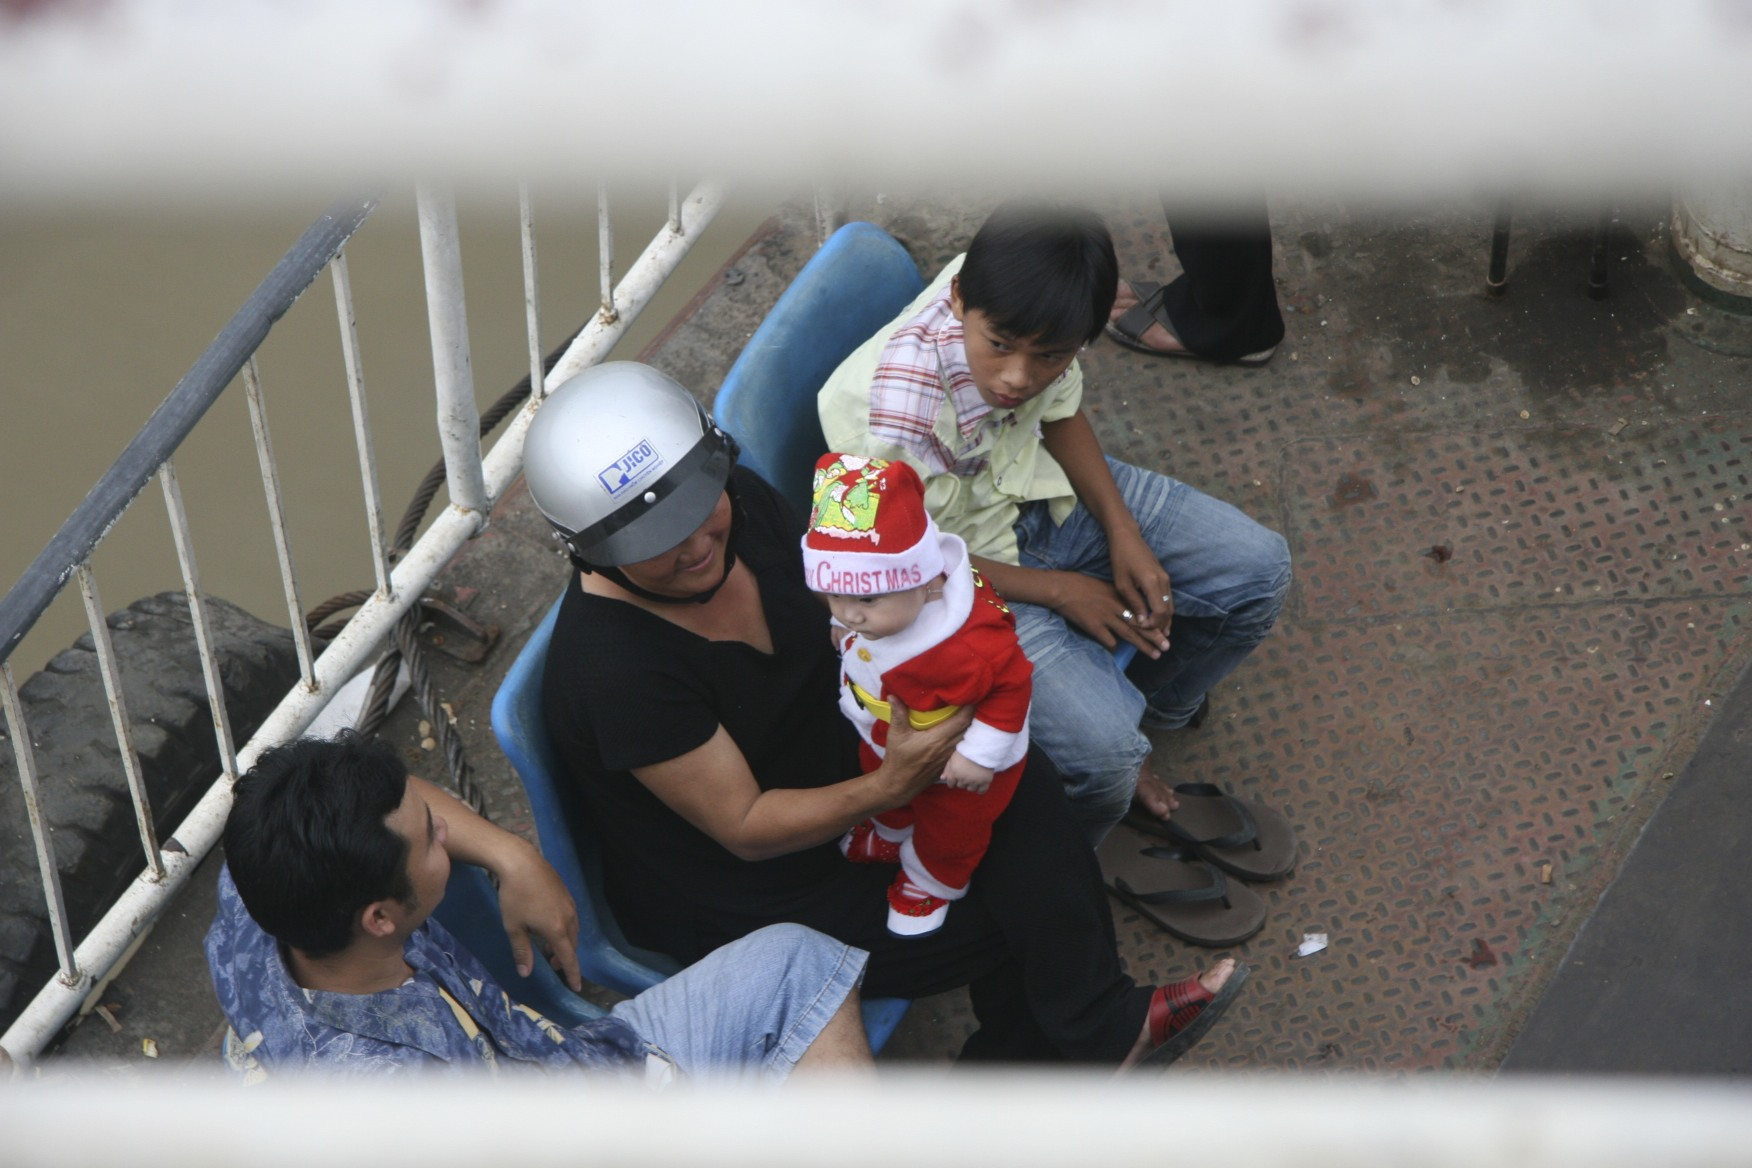 Vietnamese kid in a Santa suit on a ferry.